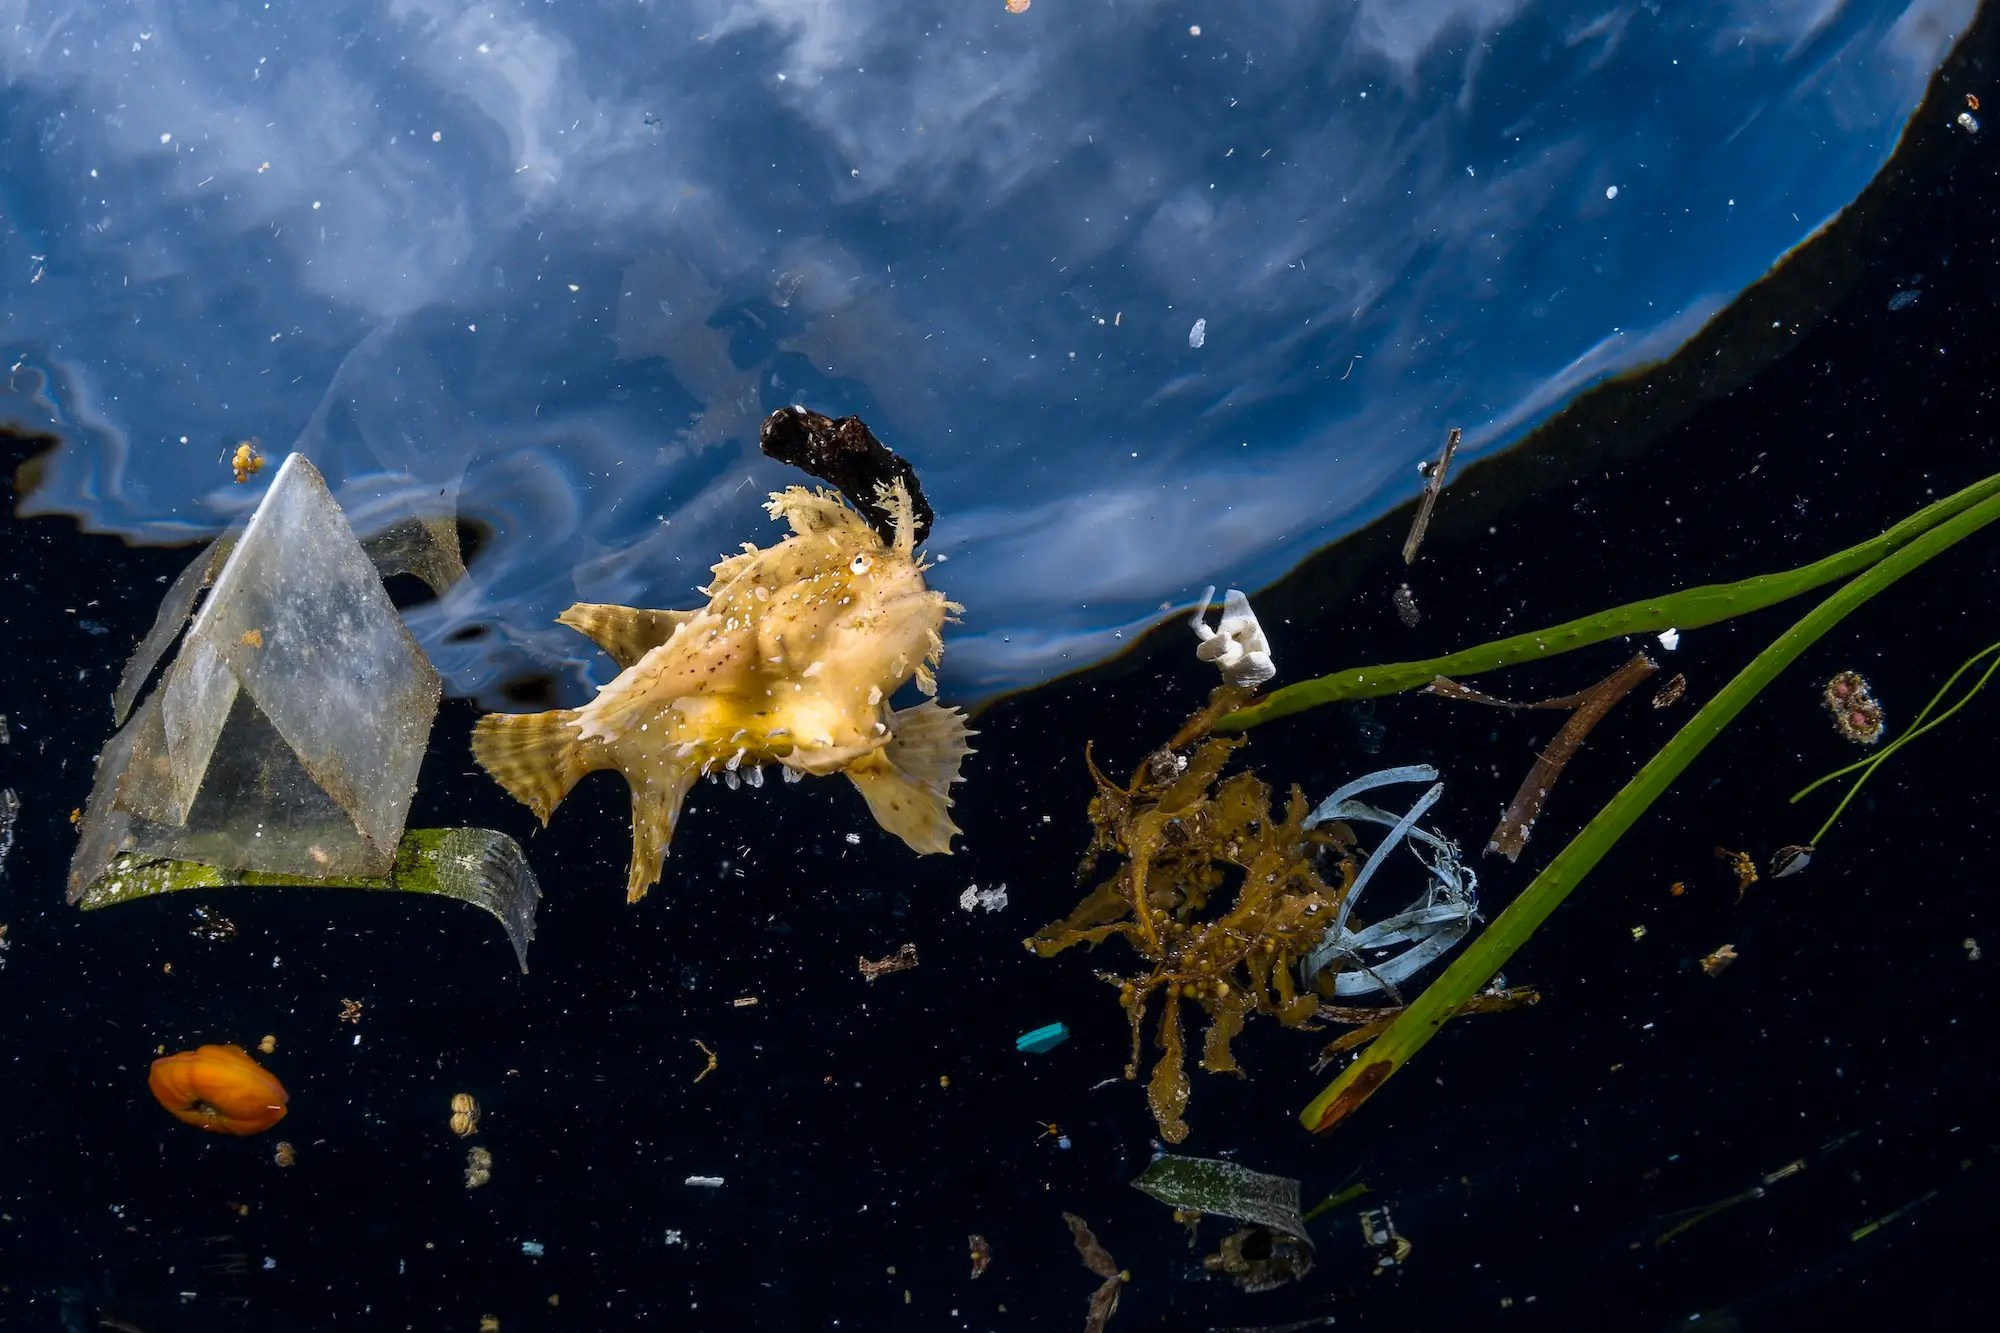 The most gorgeous wildlife photos of 2018 shine a light on nature's bizarre and wonderful beauty french photographer greg lecoeur found this frogfish surrounded by plastic bits in raja ampat indonesia